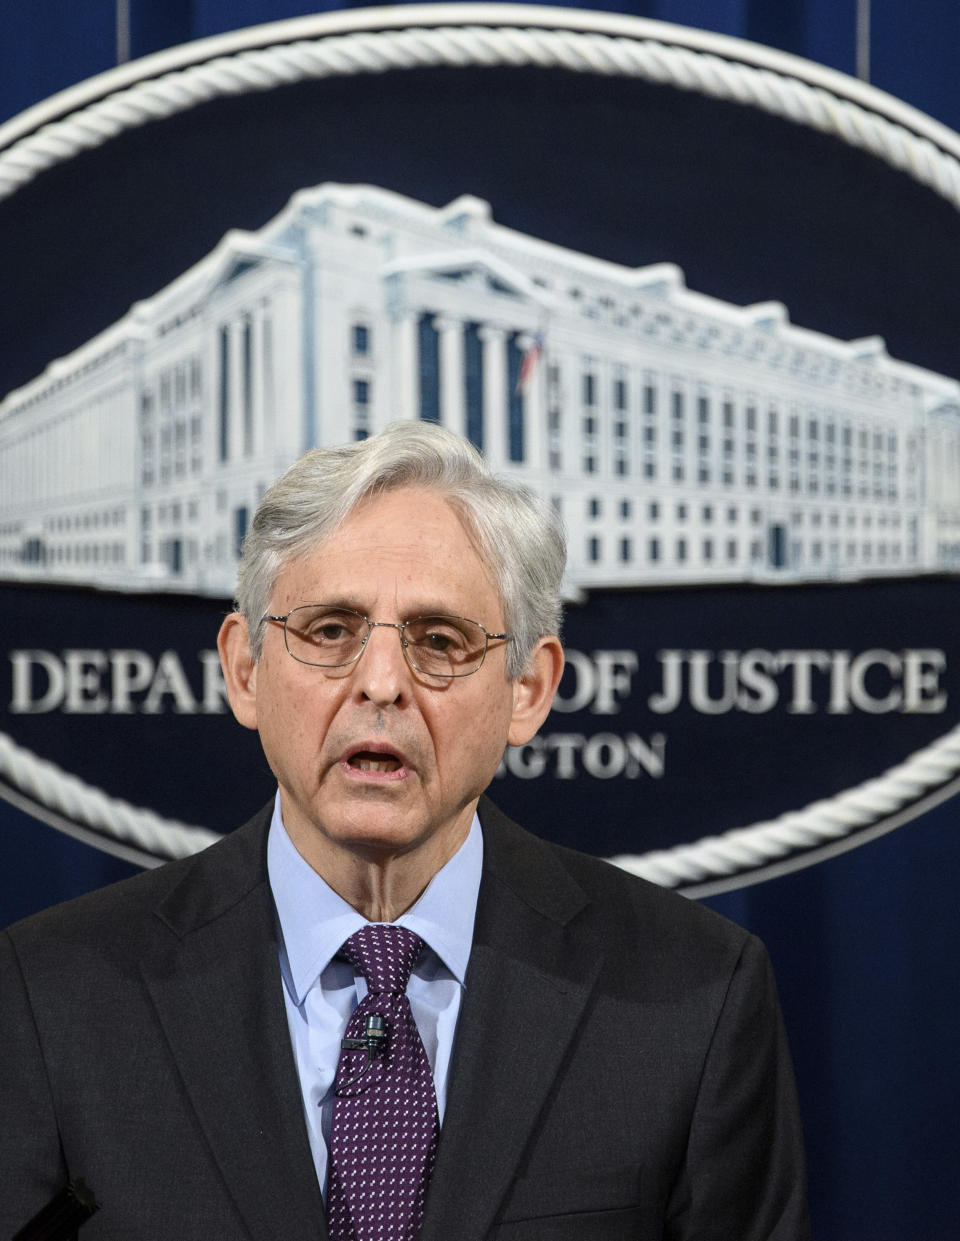 Attorney General Merrick Garland speaks at the Department of Justice in Washington, Monday, April 26, 2021. The Justice Department is opening a sweeping probe into policing in Louisville after the March 2020 death of Breonna Taylor, who was shot to death by police during a raid at her home. (Mandel Ngan/Pool via AP)